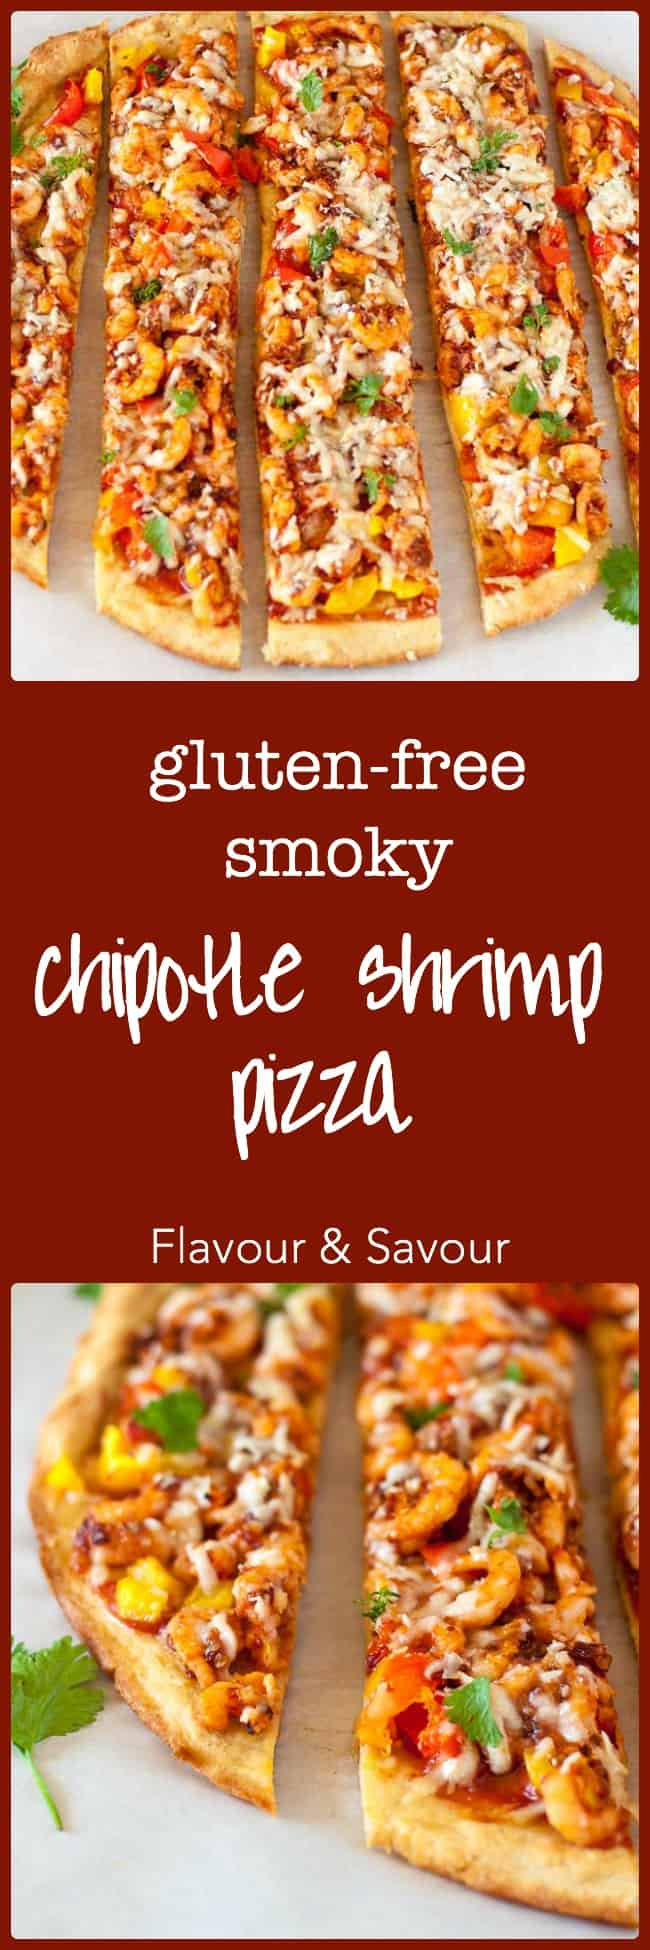 This Smoky Chipotle Shrimp Pizza is smoking hot! Chipotle peppers and garlic season fresh shrimp and crunchy red and yellow bell peppers. Make it gluten-free!|www.flavourandsavour.com